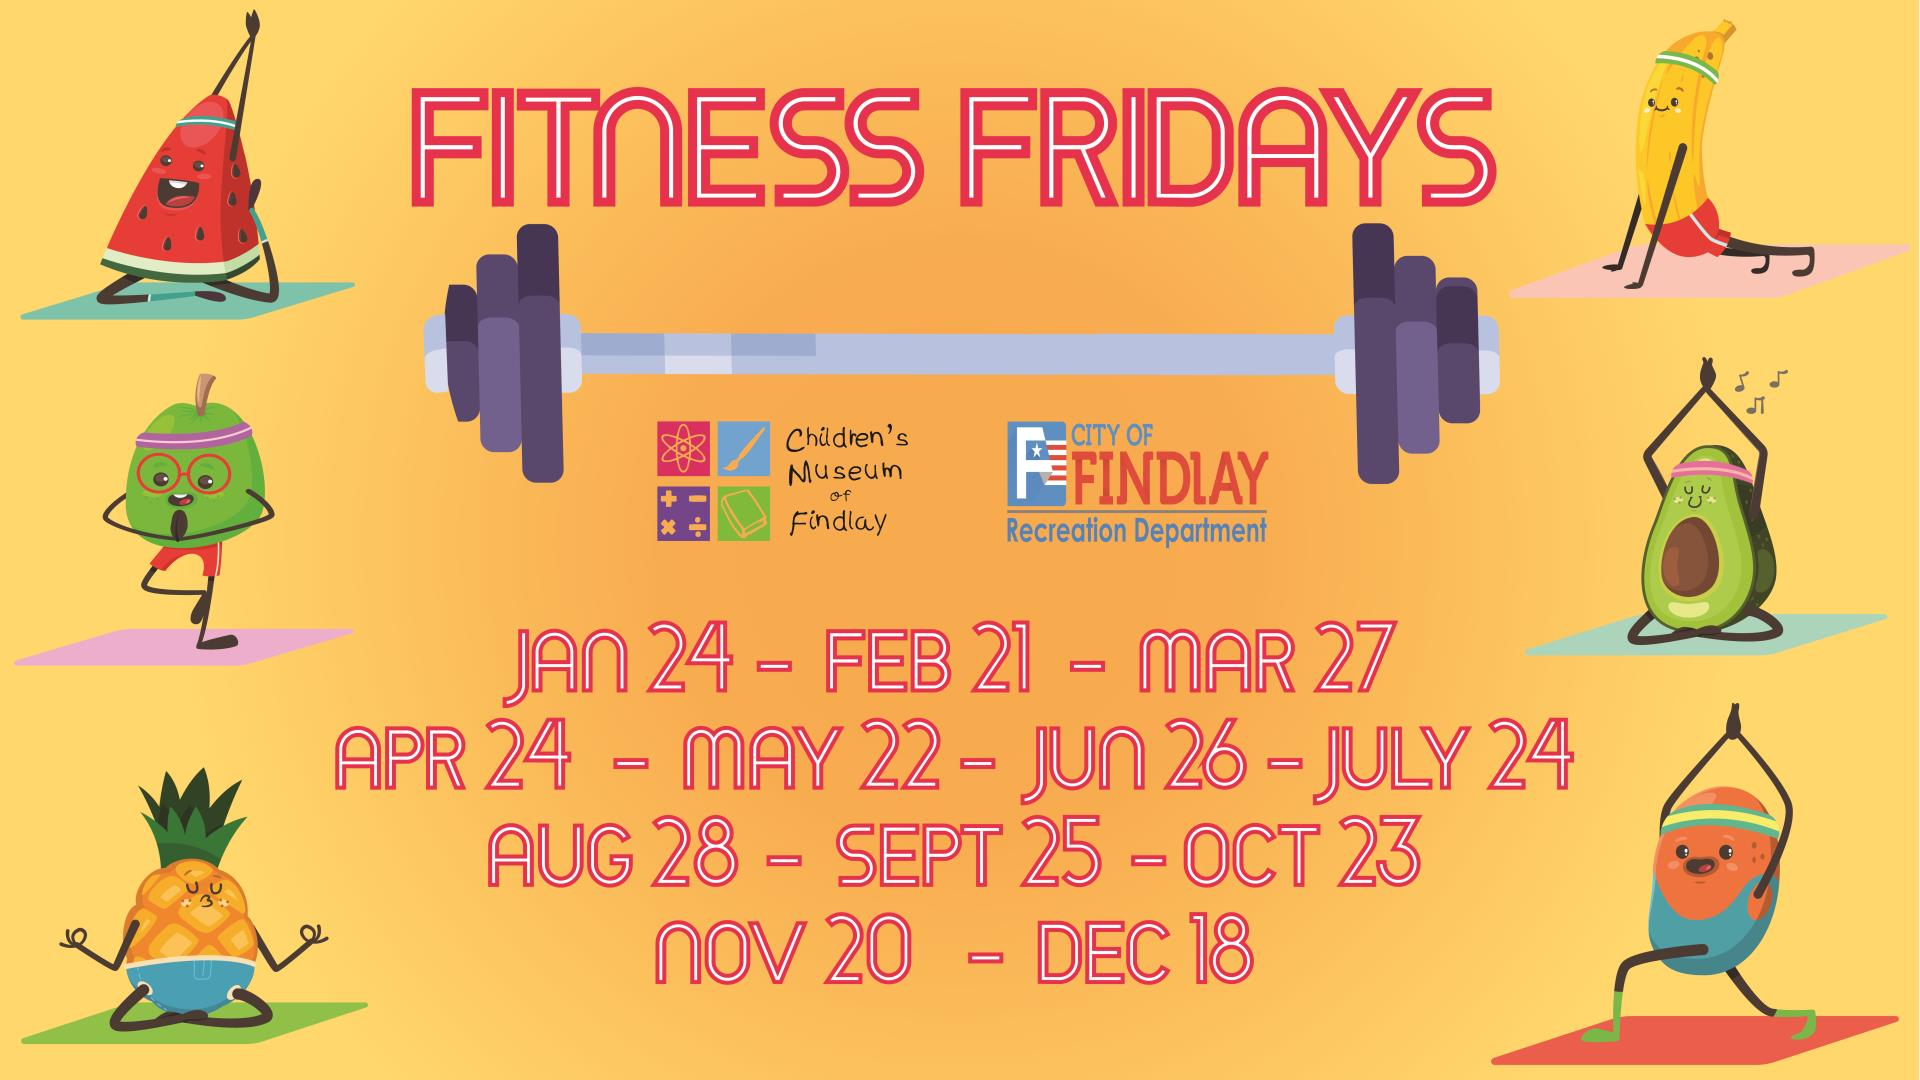 Fitness Friday Final